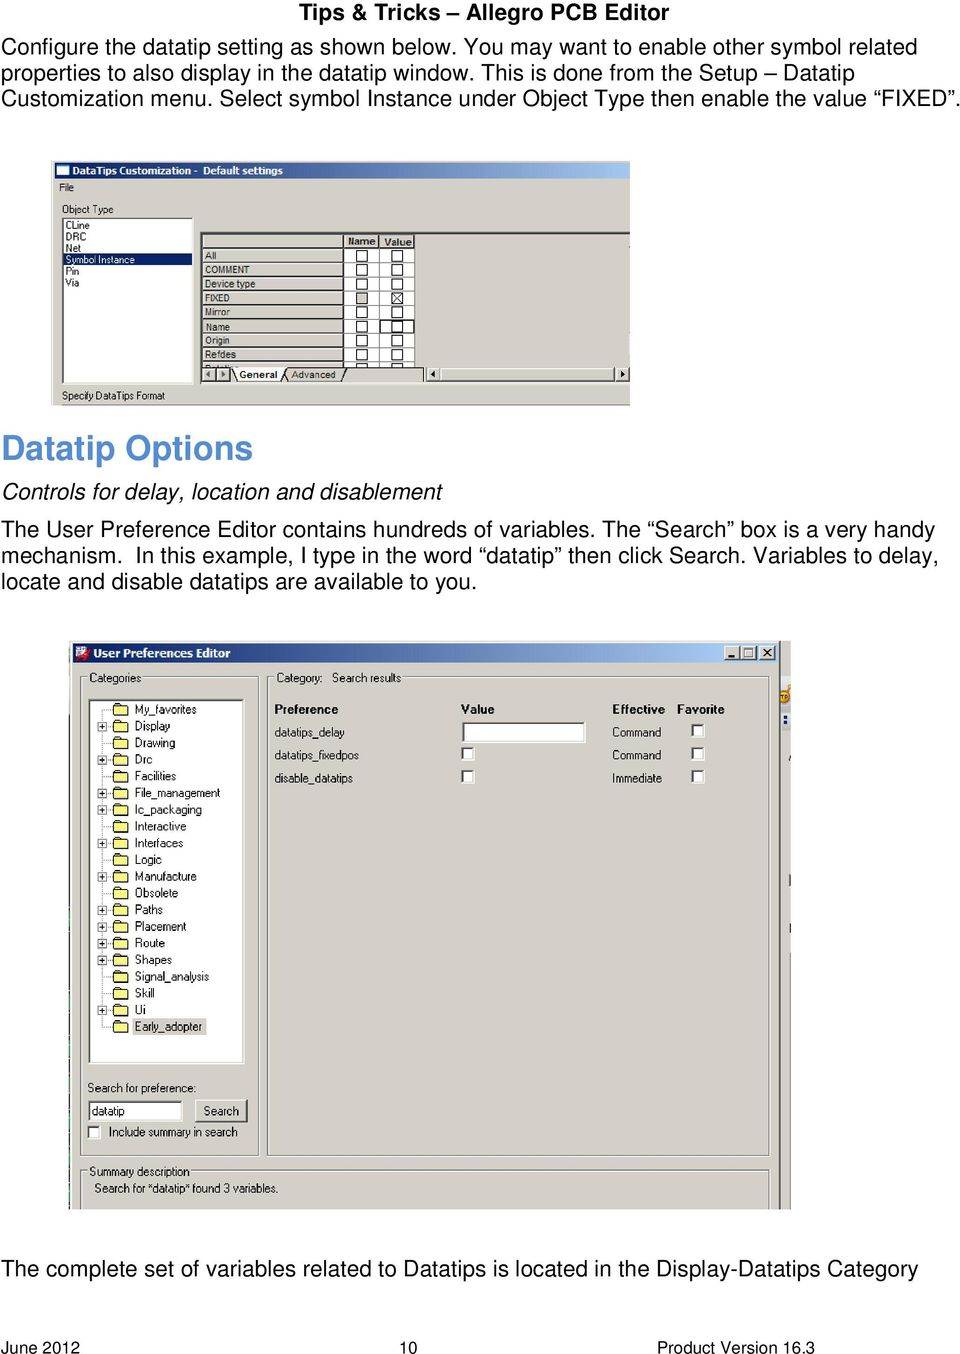 Tips & Tricks. Allegro PCB Editor. April Ed Hickey Product Engineer ...